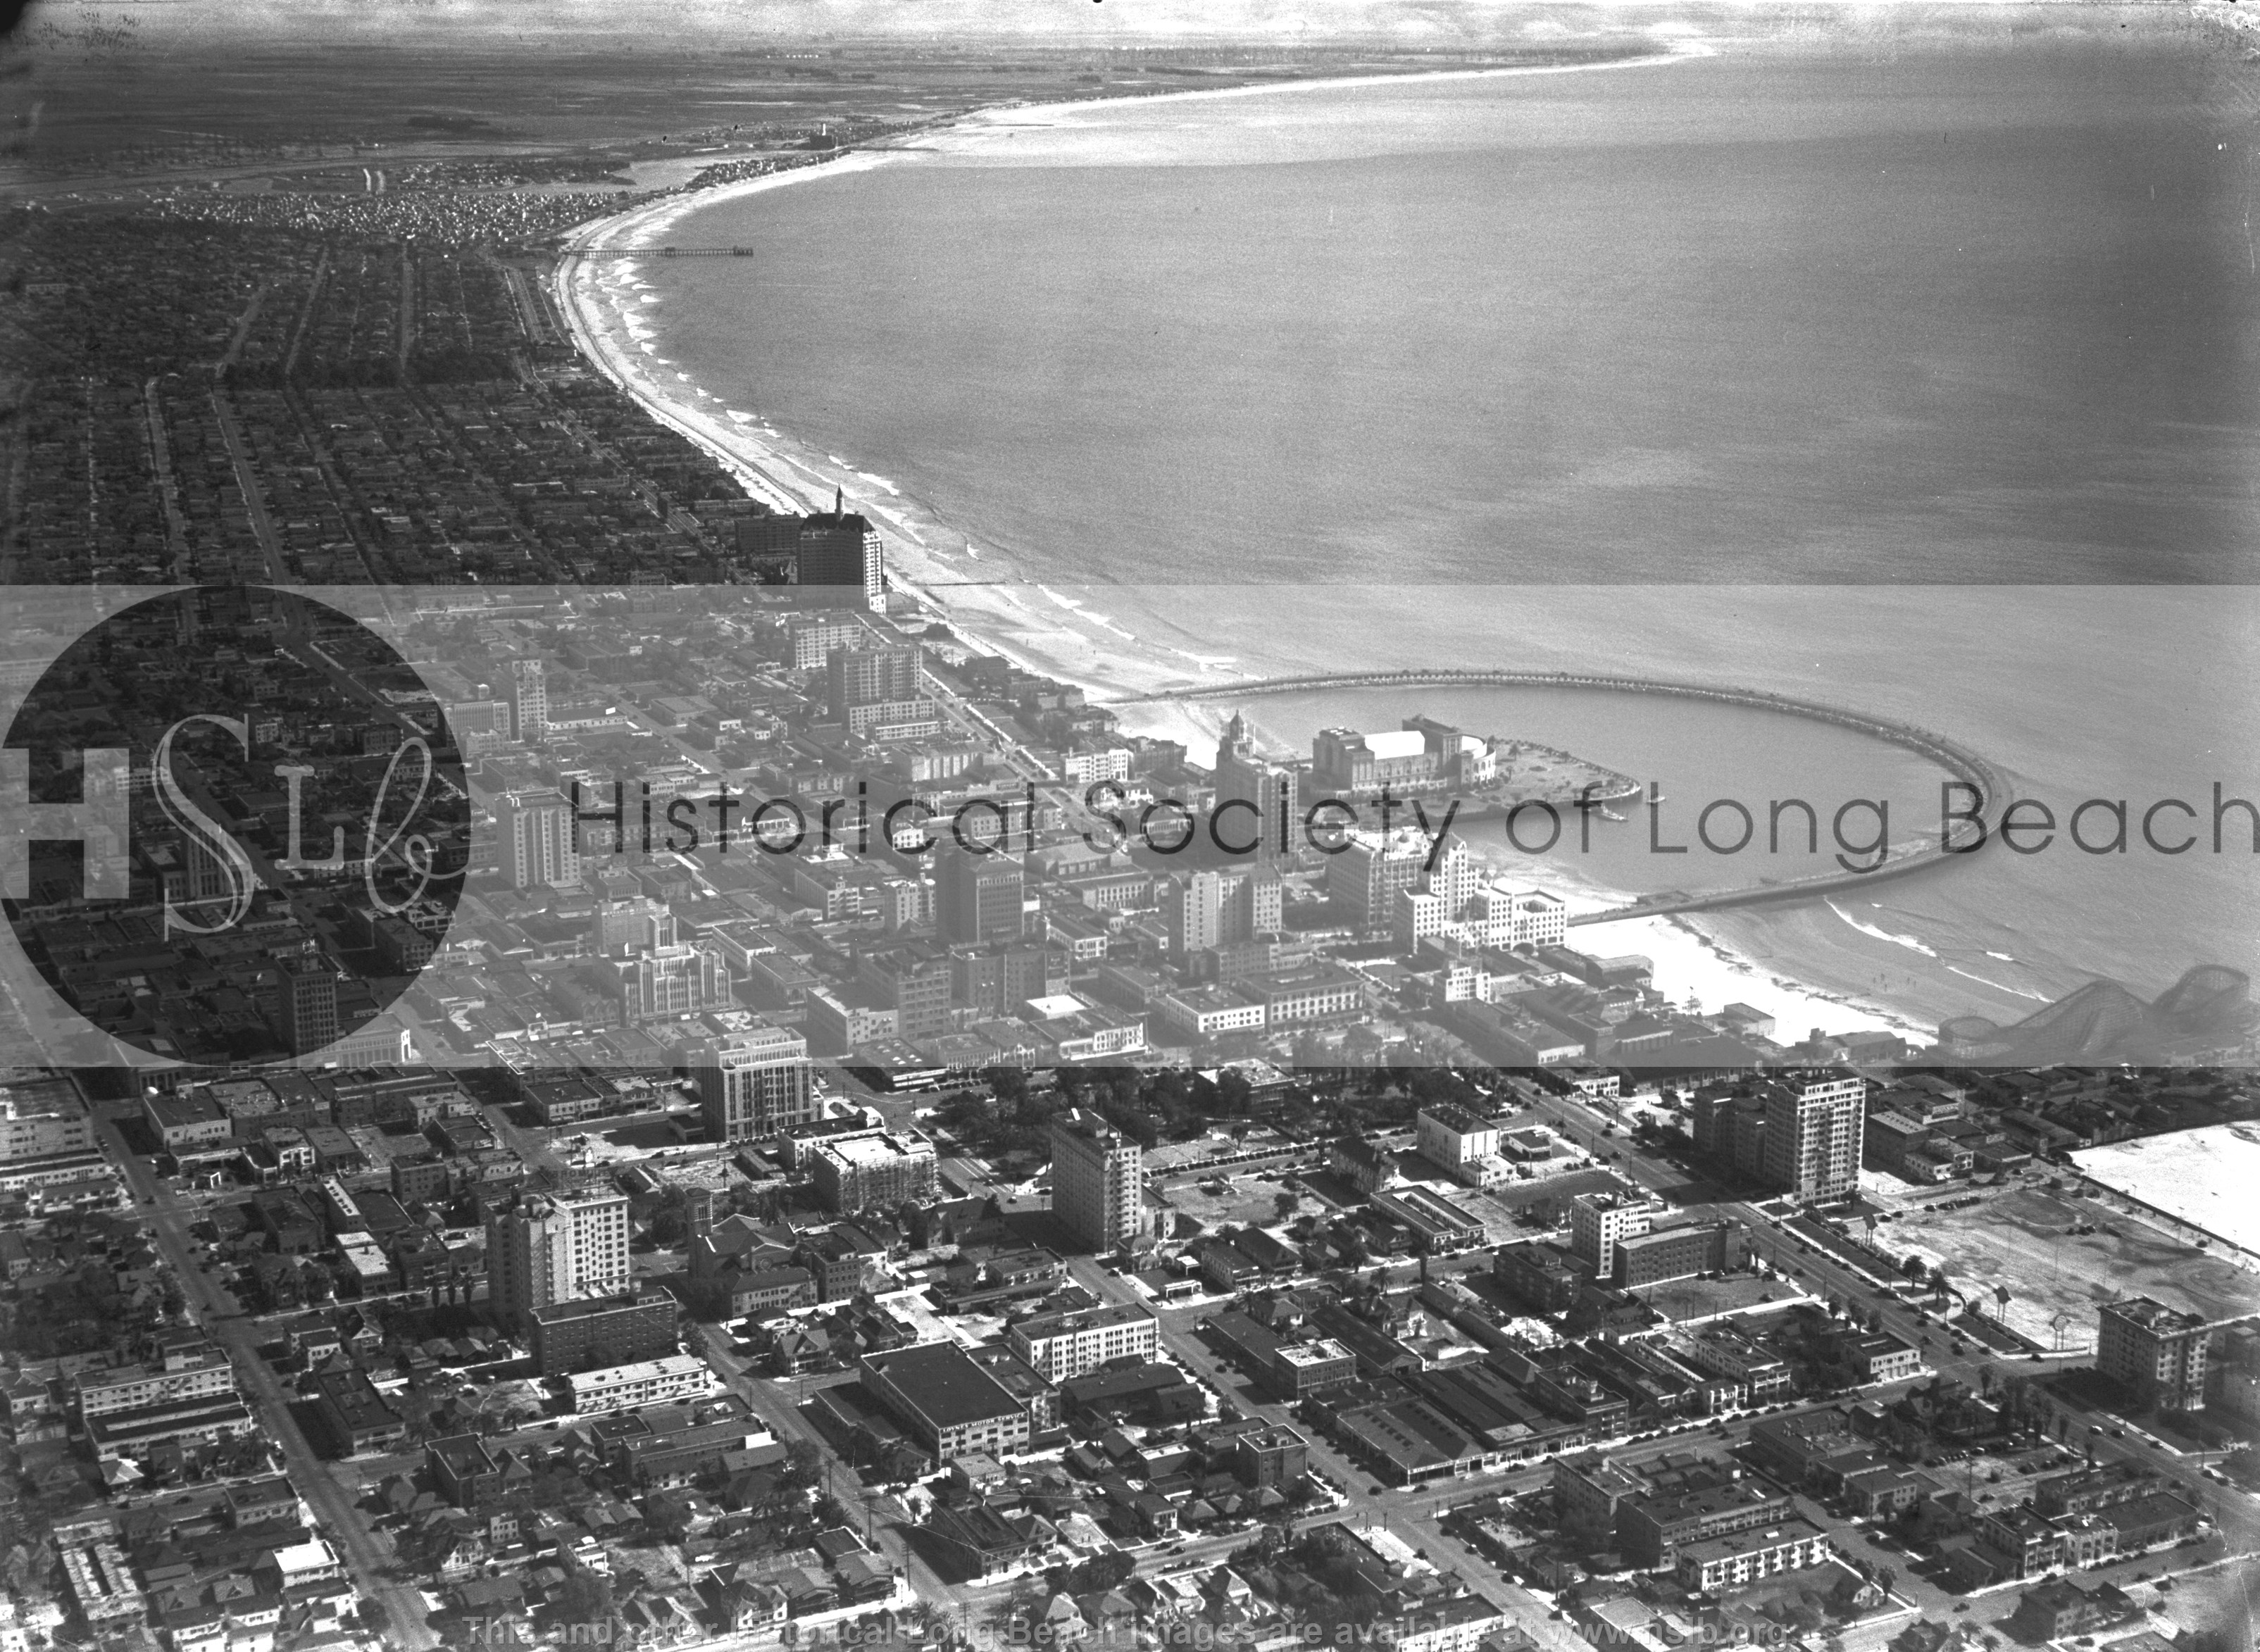 Long Beach aerial, 1937 vintage photograph